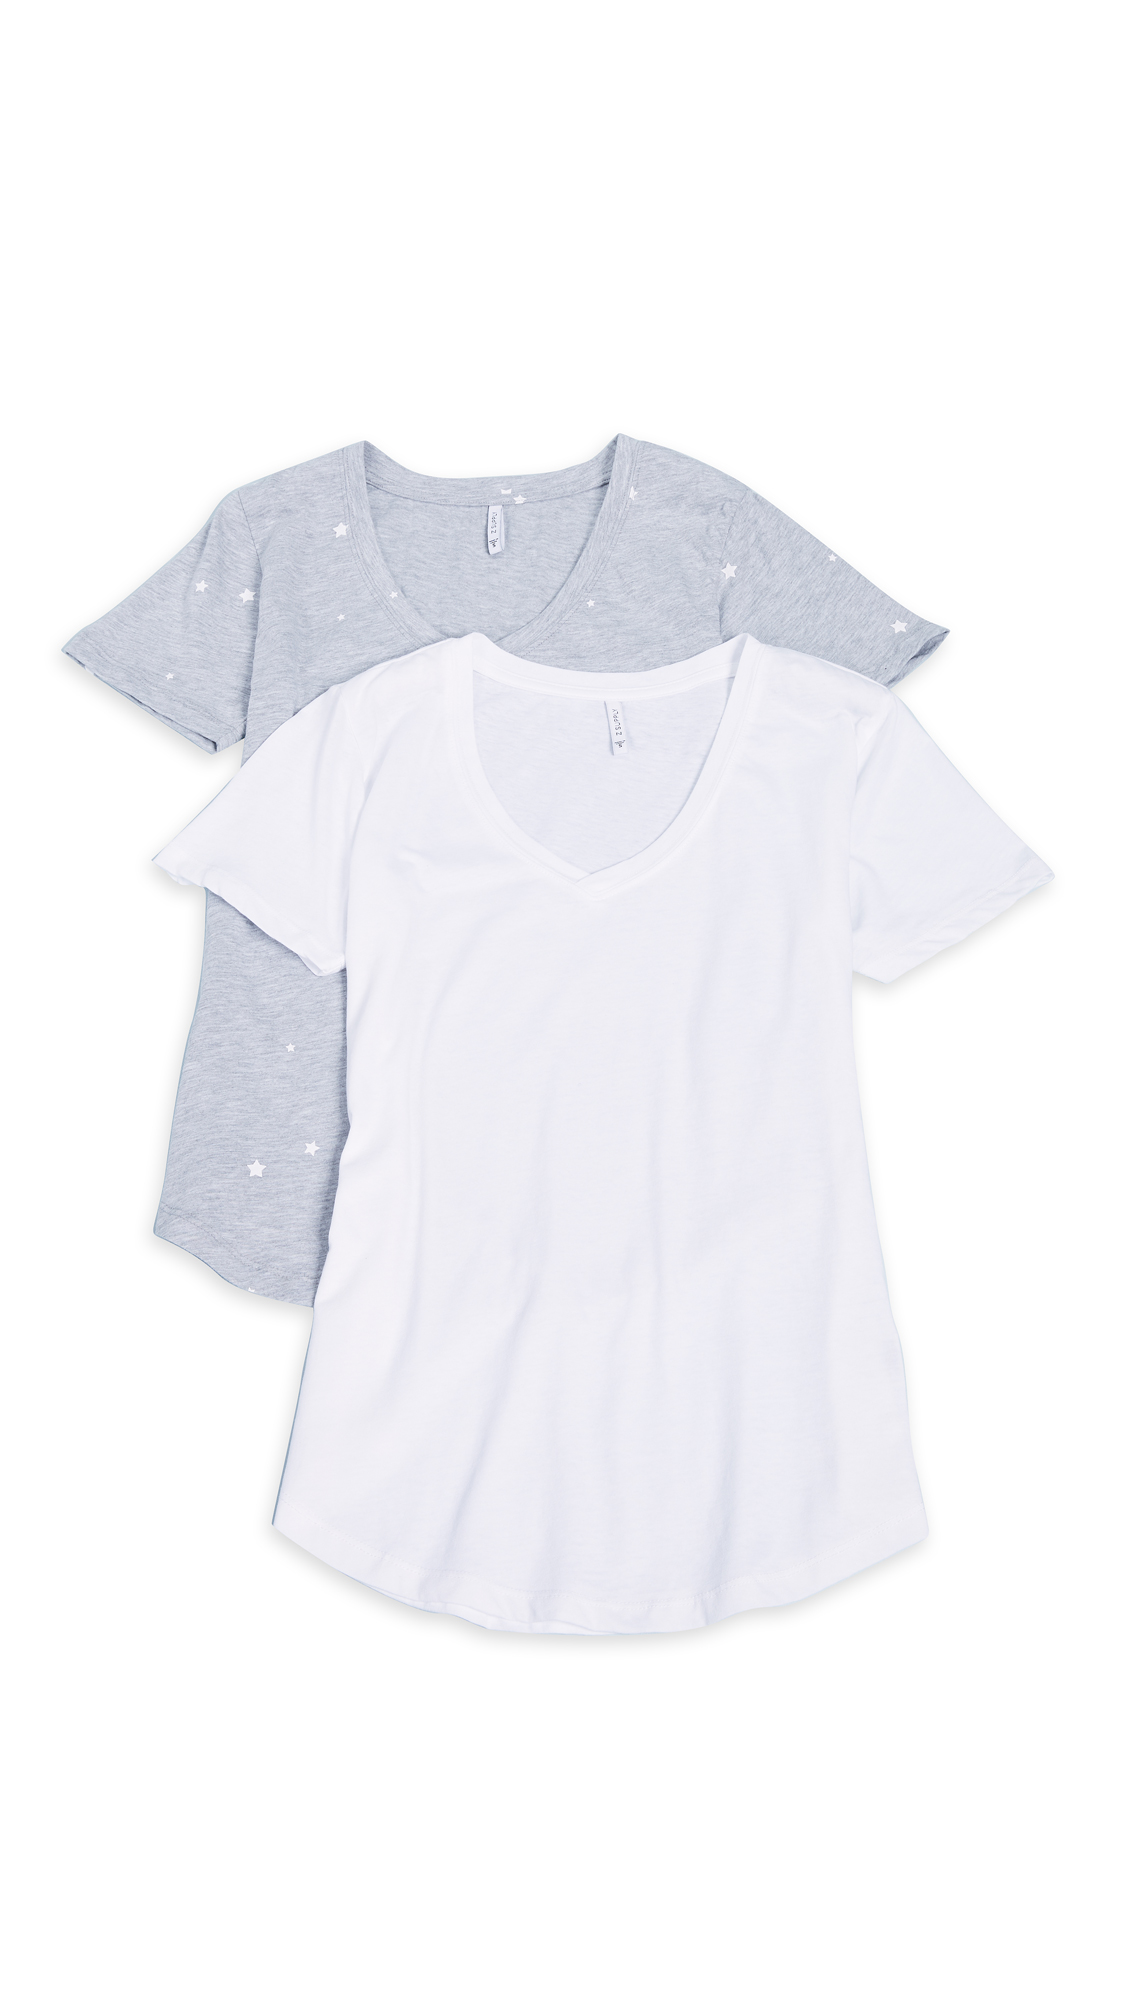 Z SUPPLY STAR & SOLID TEE 2 PACK